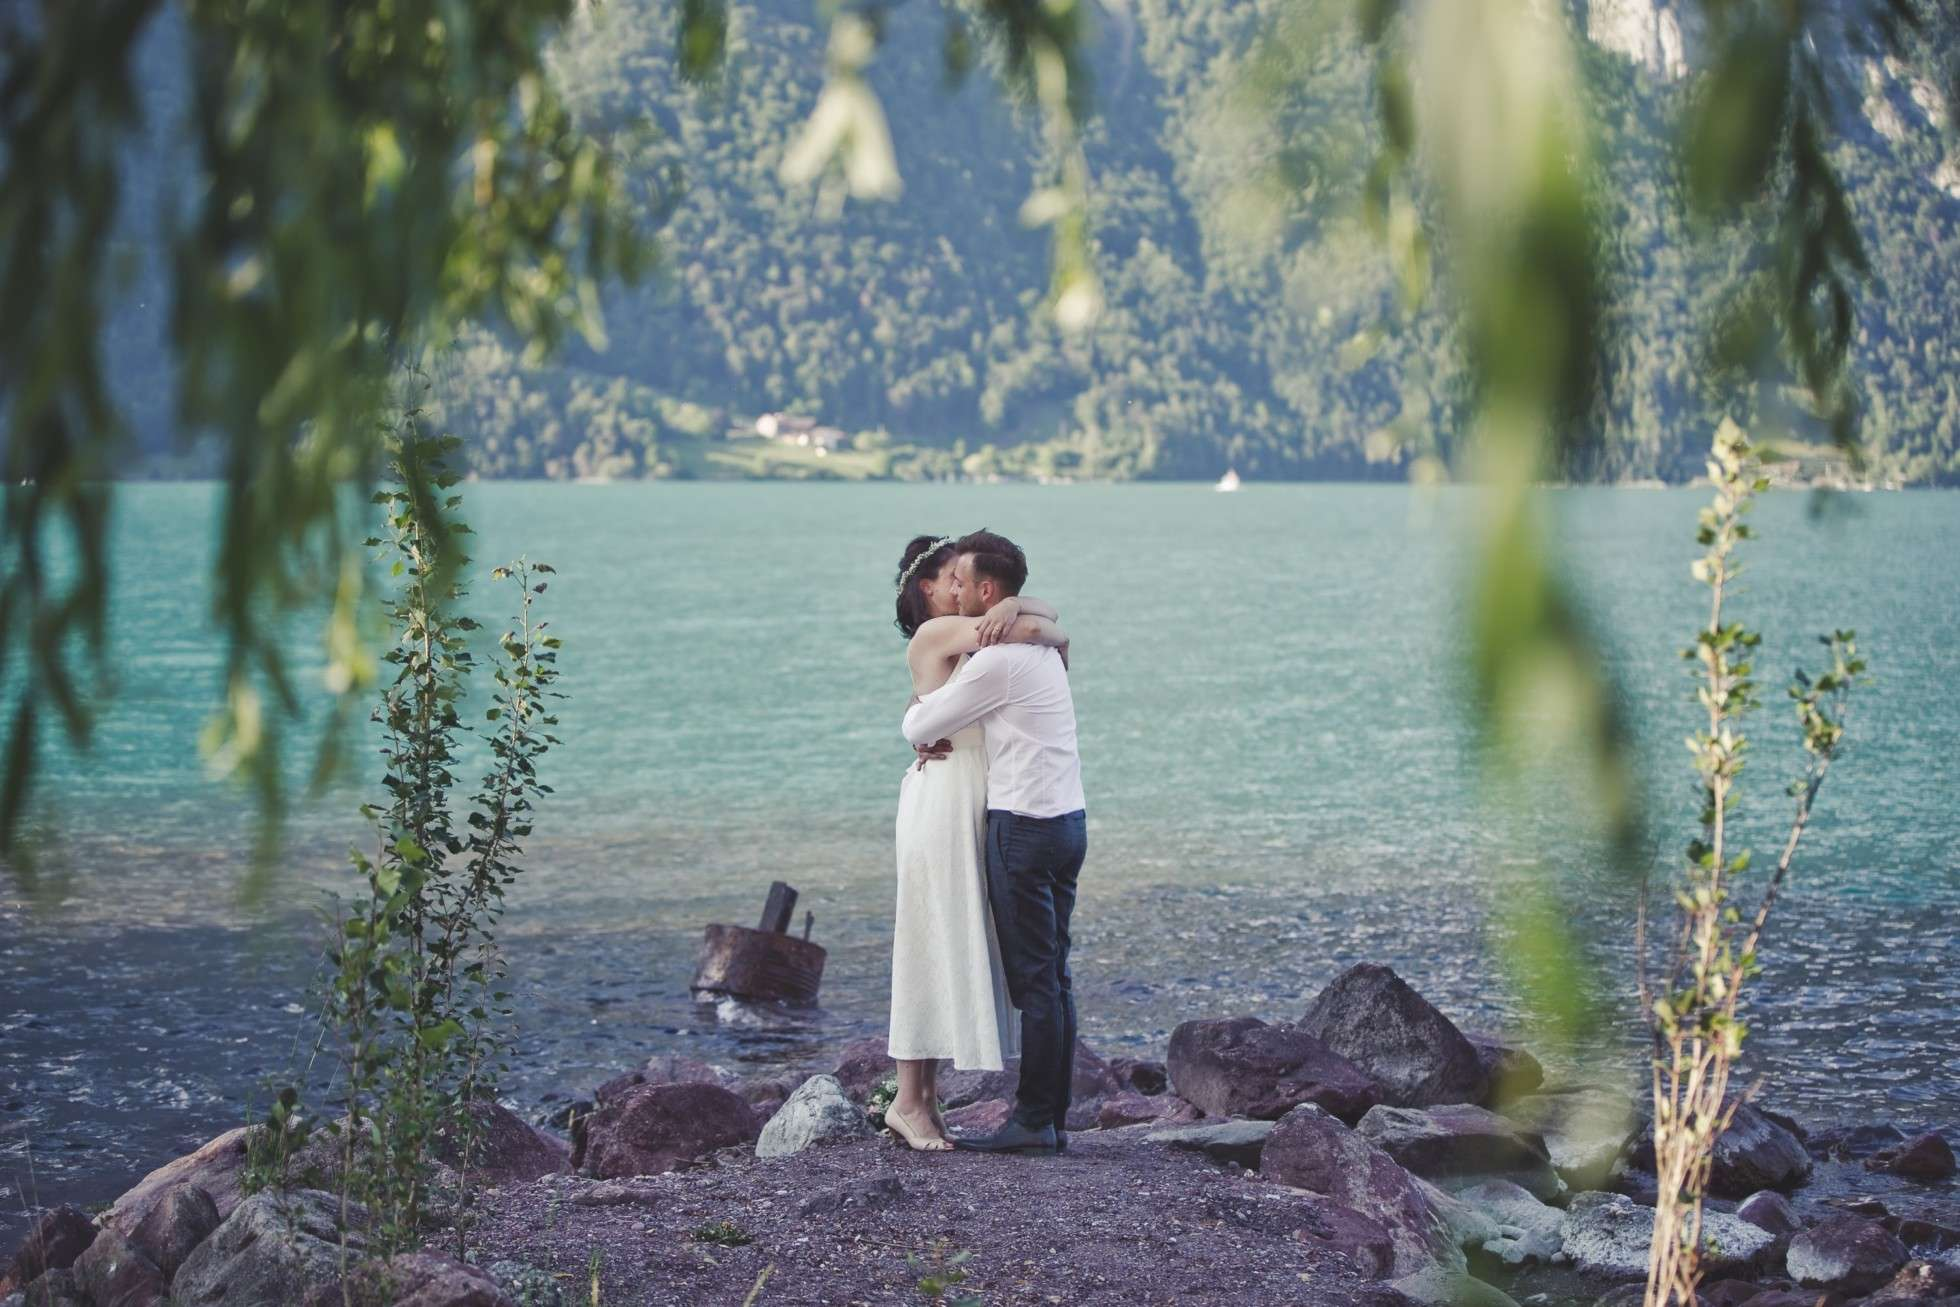 walensee; hochzeitsplaner walensee; hochzeitsplaner schweiz; swiss wedding planner; marrytale; heiraten in dioe schweiz; destination wedding switzerland; heiraten auf see; brautpaar; bridal shooting; braut; braeutigam; hochzeitskleid